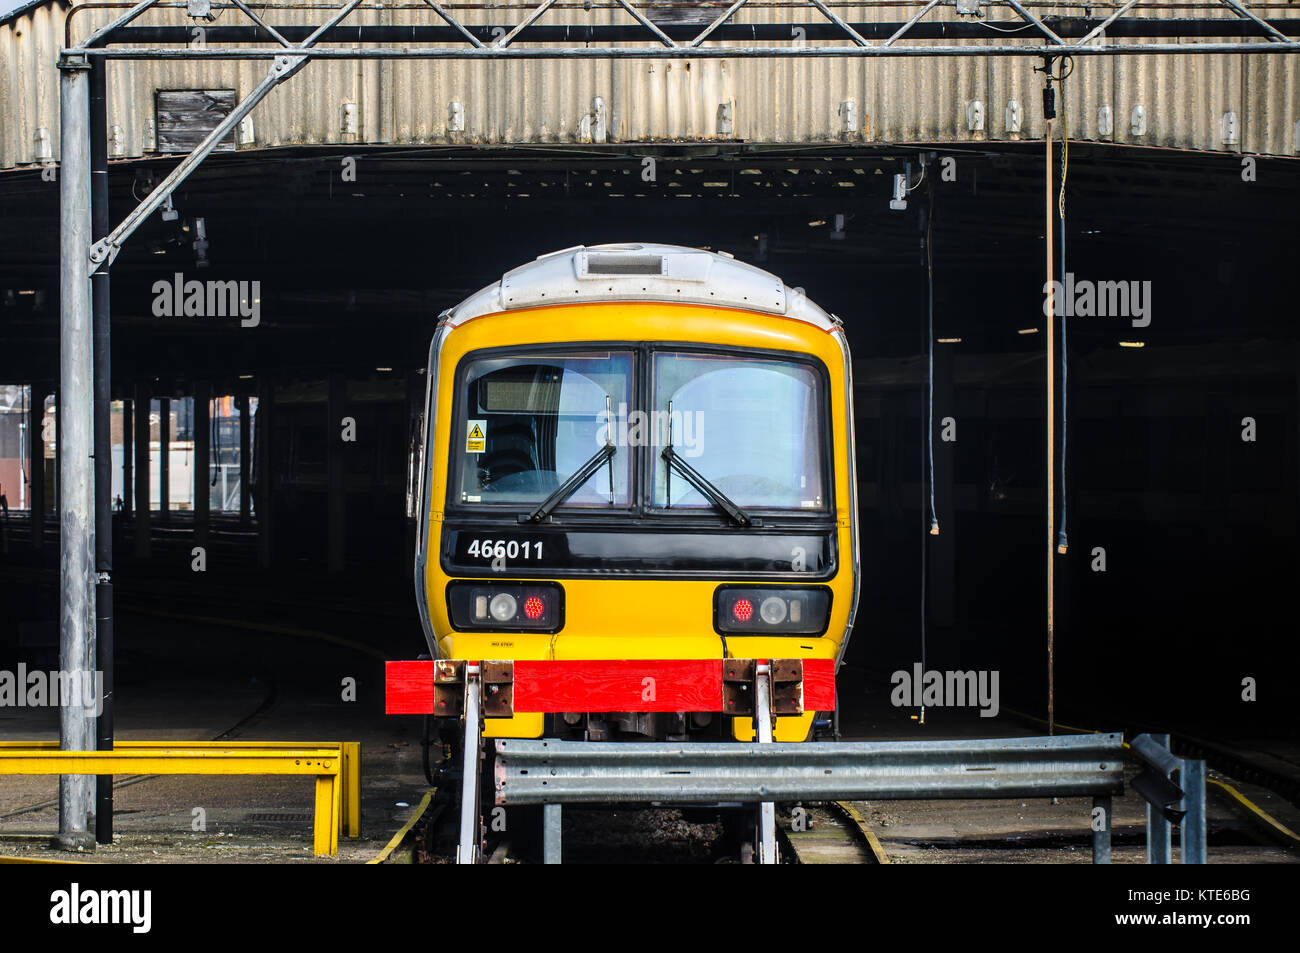 Class 466 Networker electric multiple unit railway train in London Victoria Carriage siding spur from Victoria Station - Stock Image